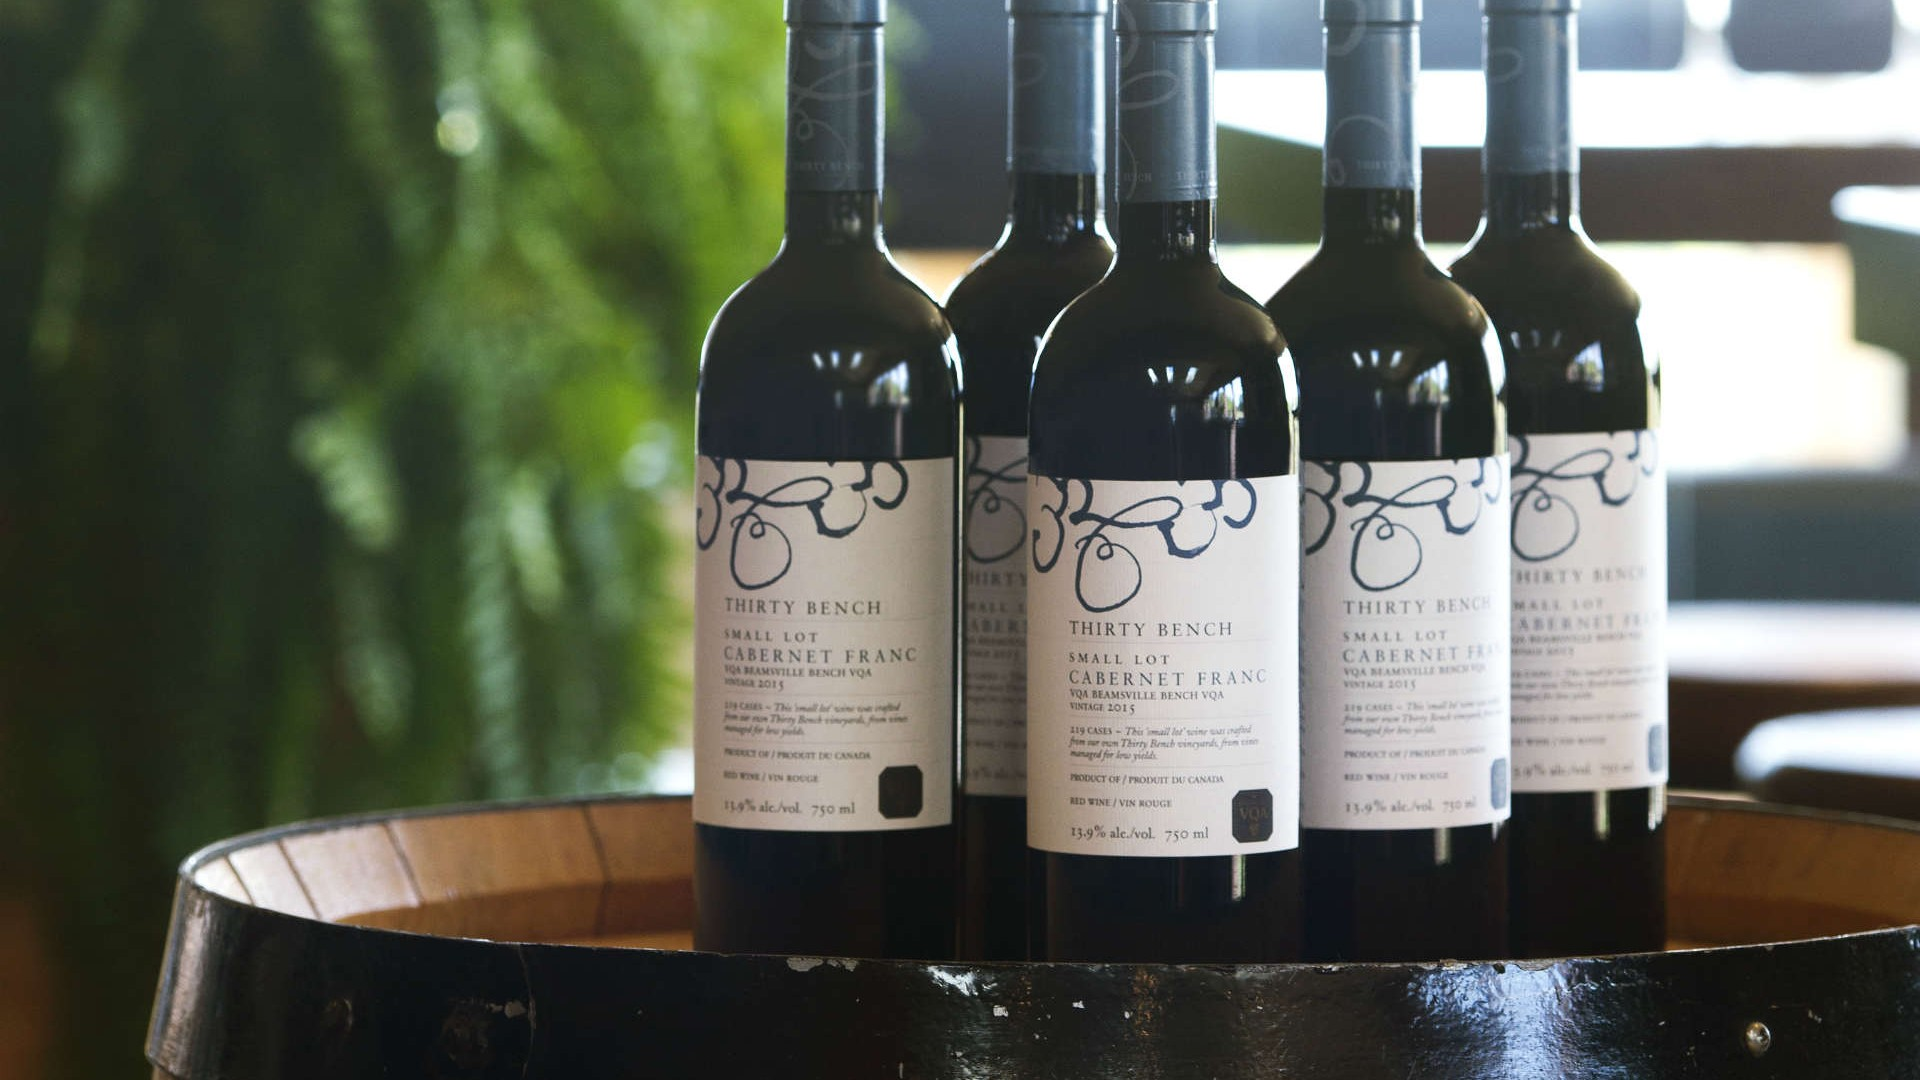 Bottle Service Thirty Bench S 2015 Small Lot Cabernet